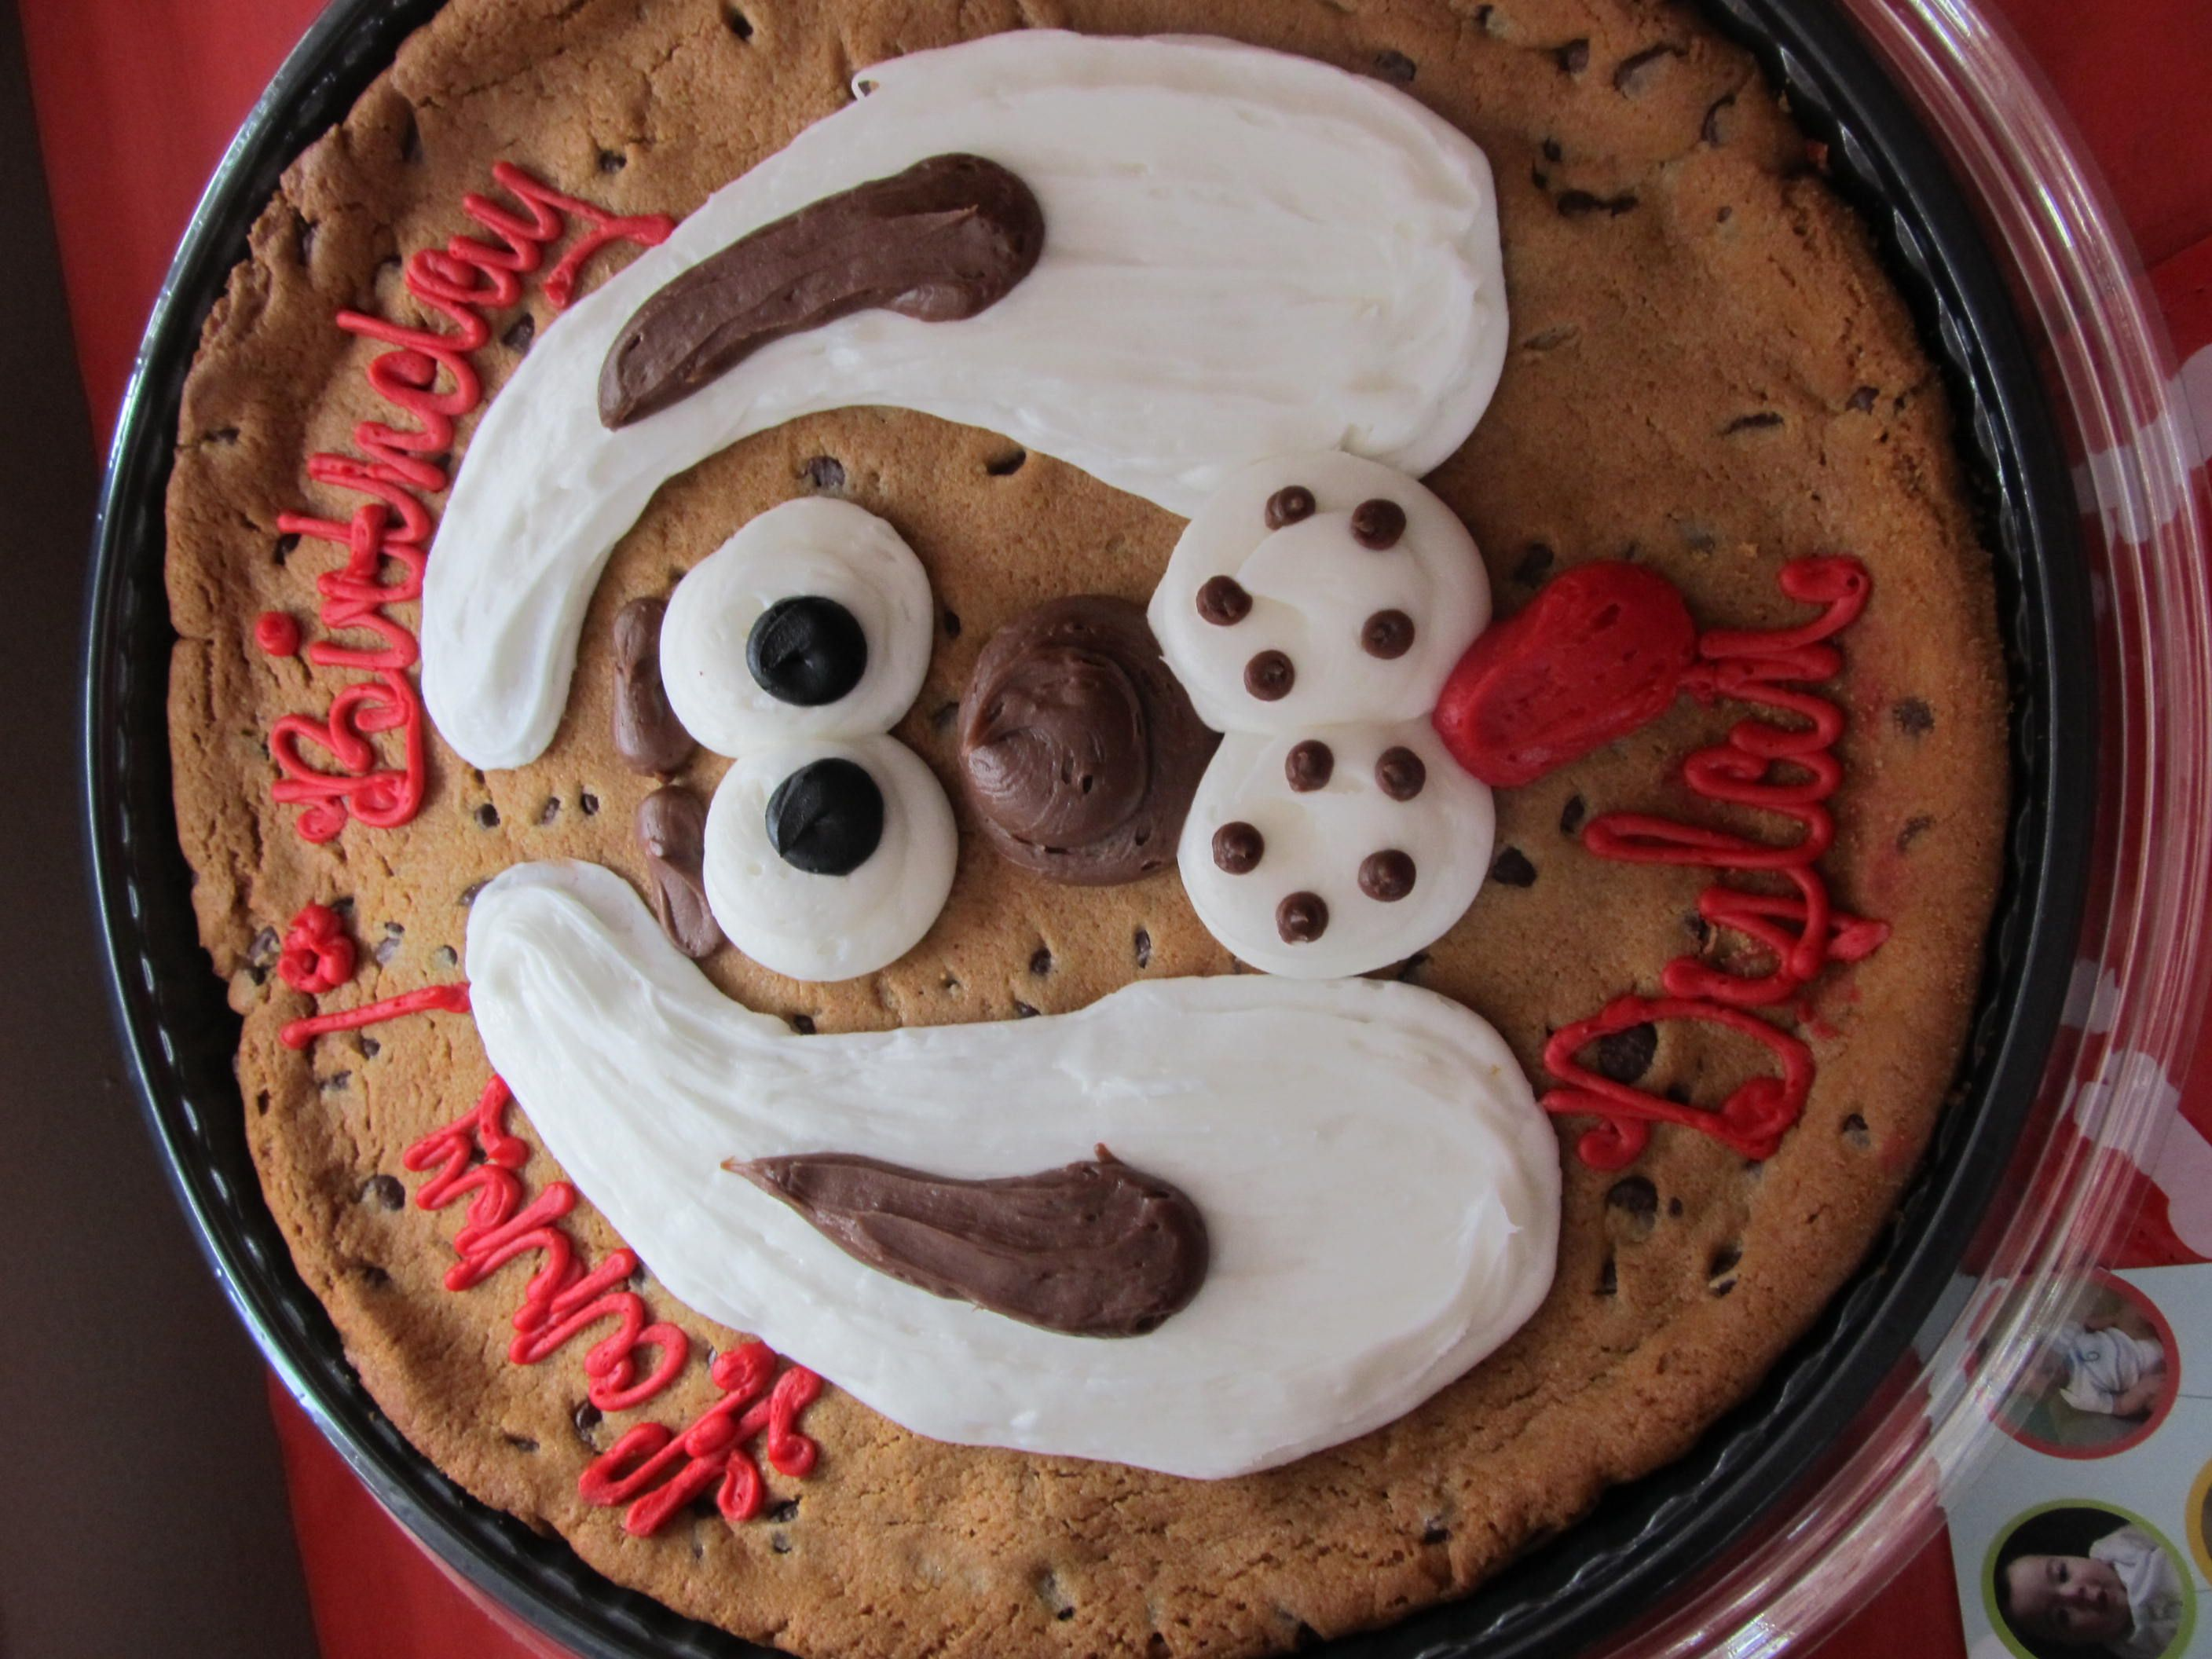 Puppy cookie cake by Acme Markets in Woodbury NJ 999 Dog